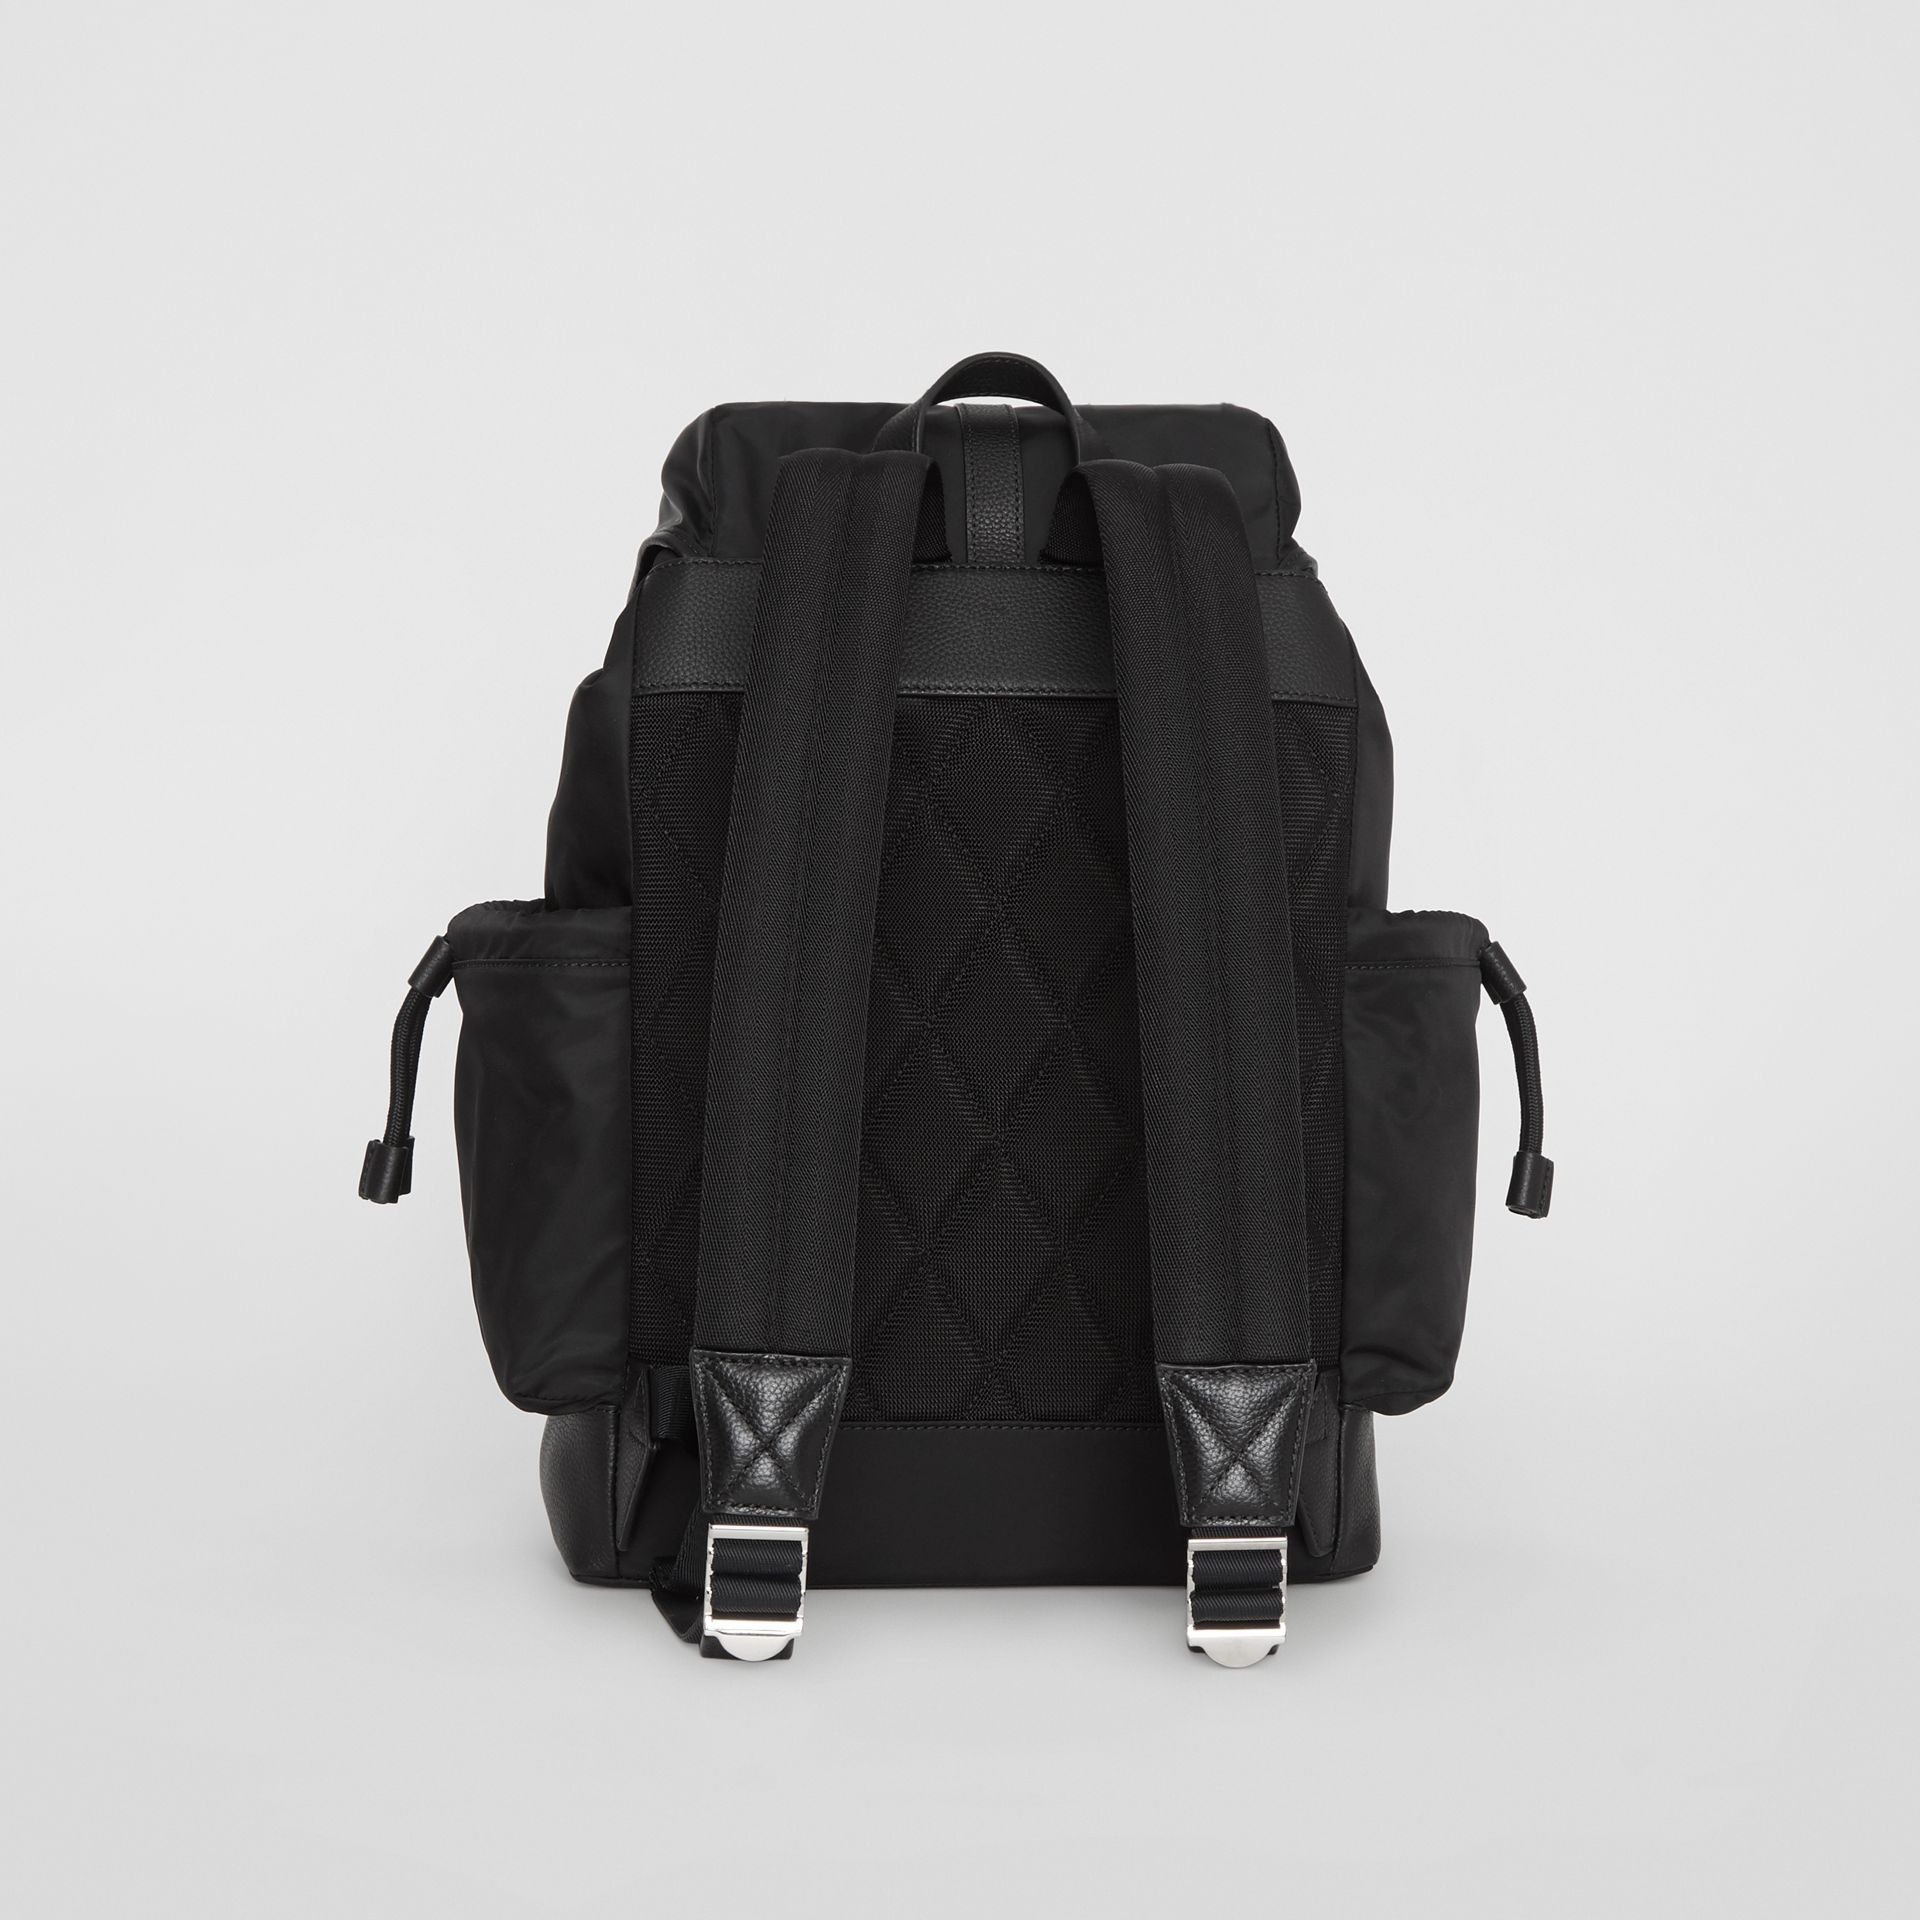 Leather Trim Baby Changing Rucksack in Black - Children | Burberry - gallery image 5